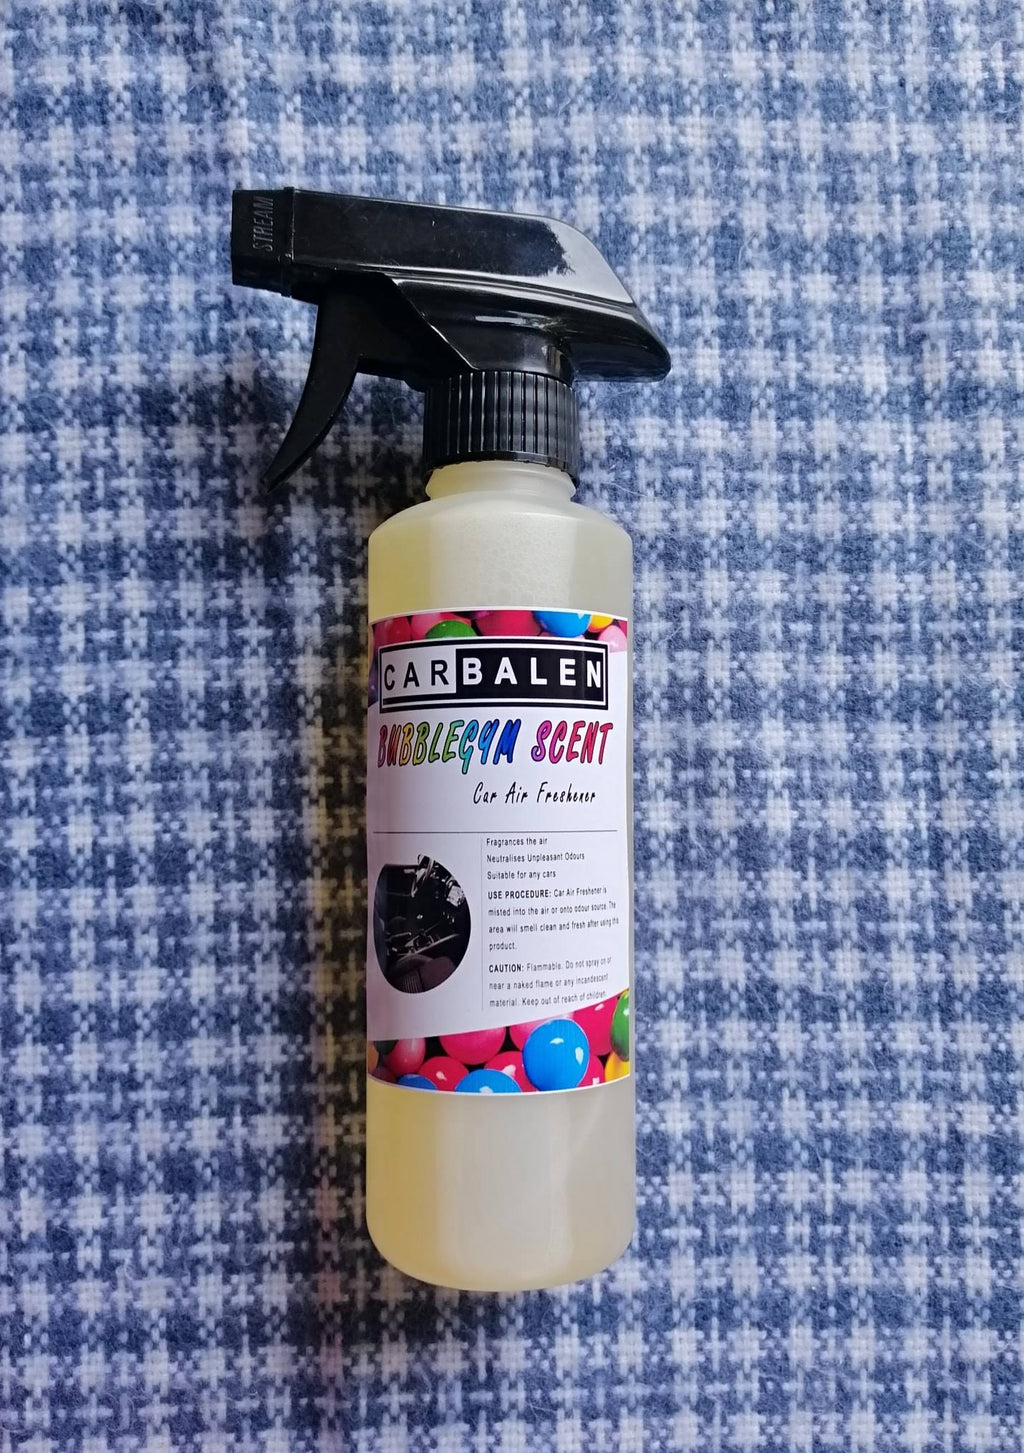 Carbalen Car Air Freshener Spray